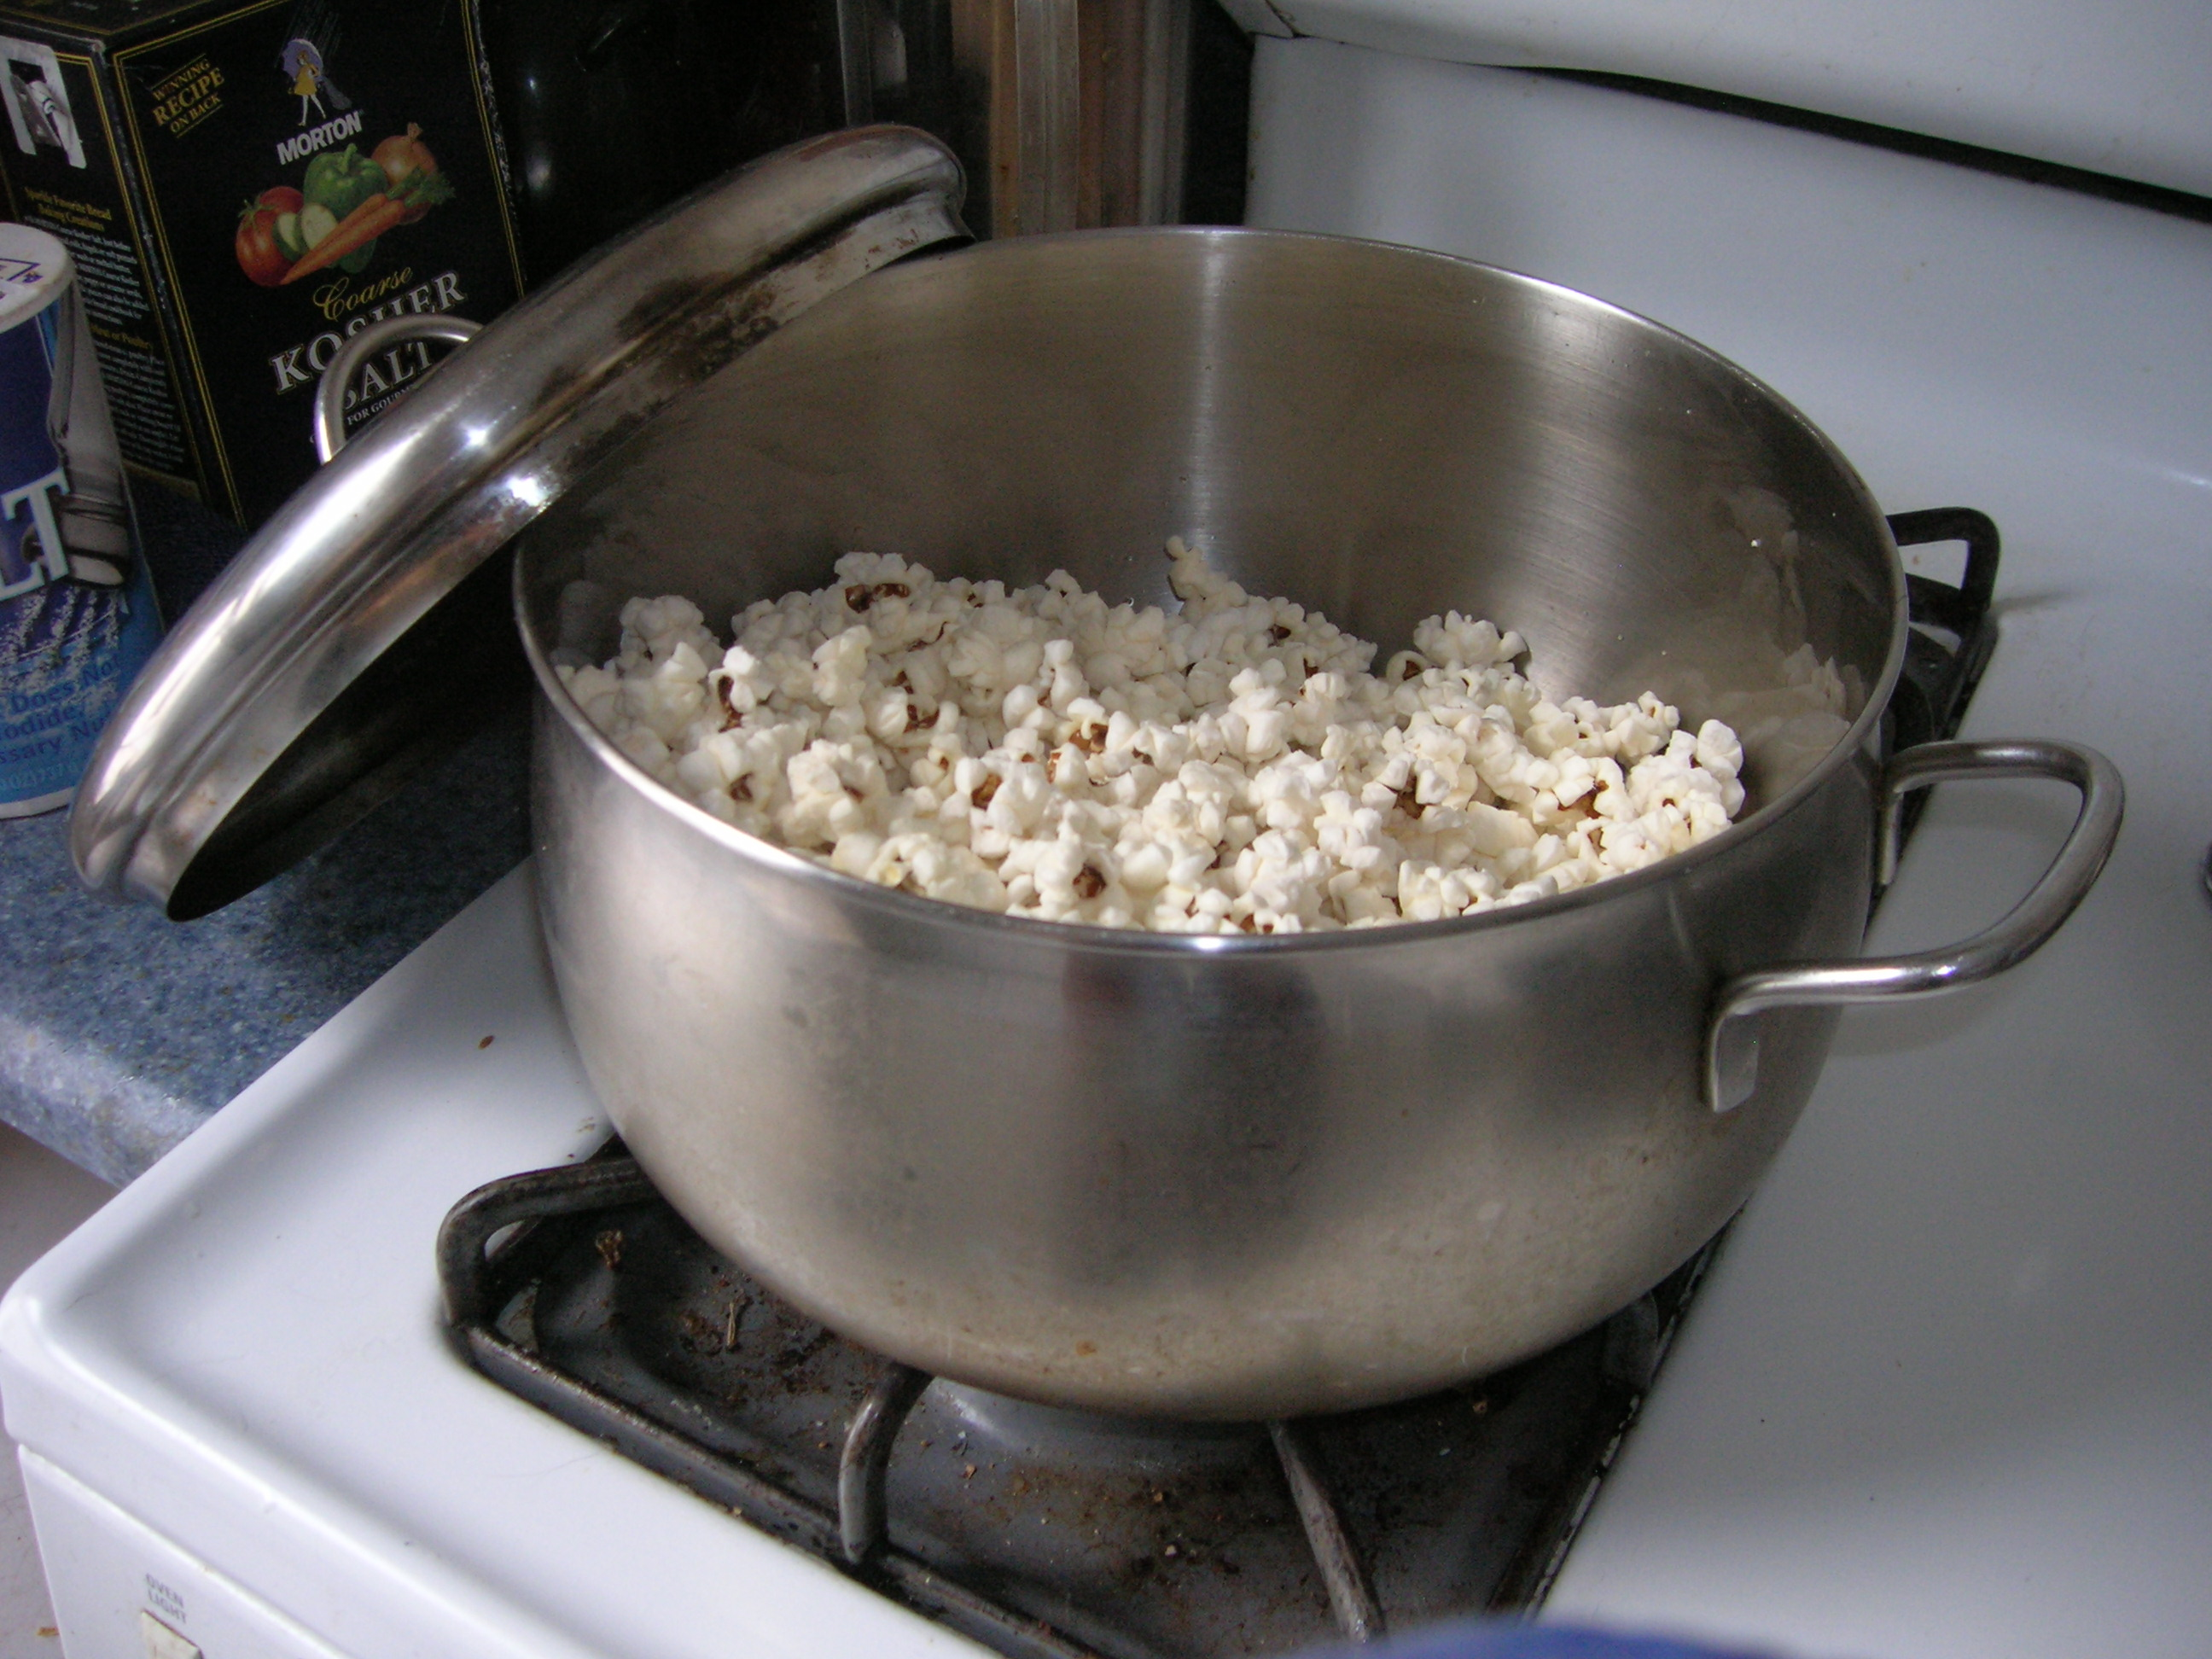 popcorn on the stove, just like Mom used to make